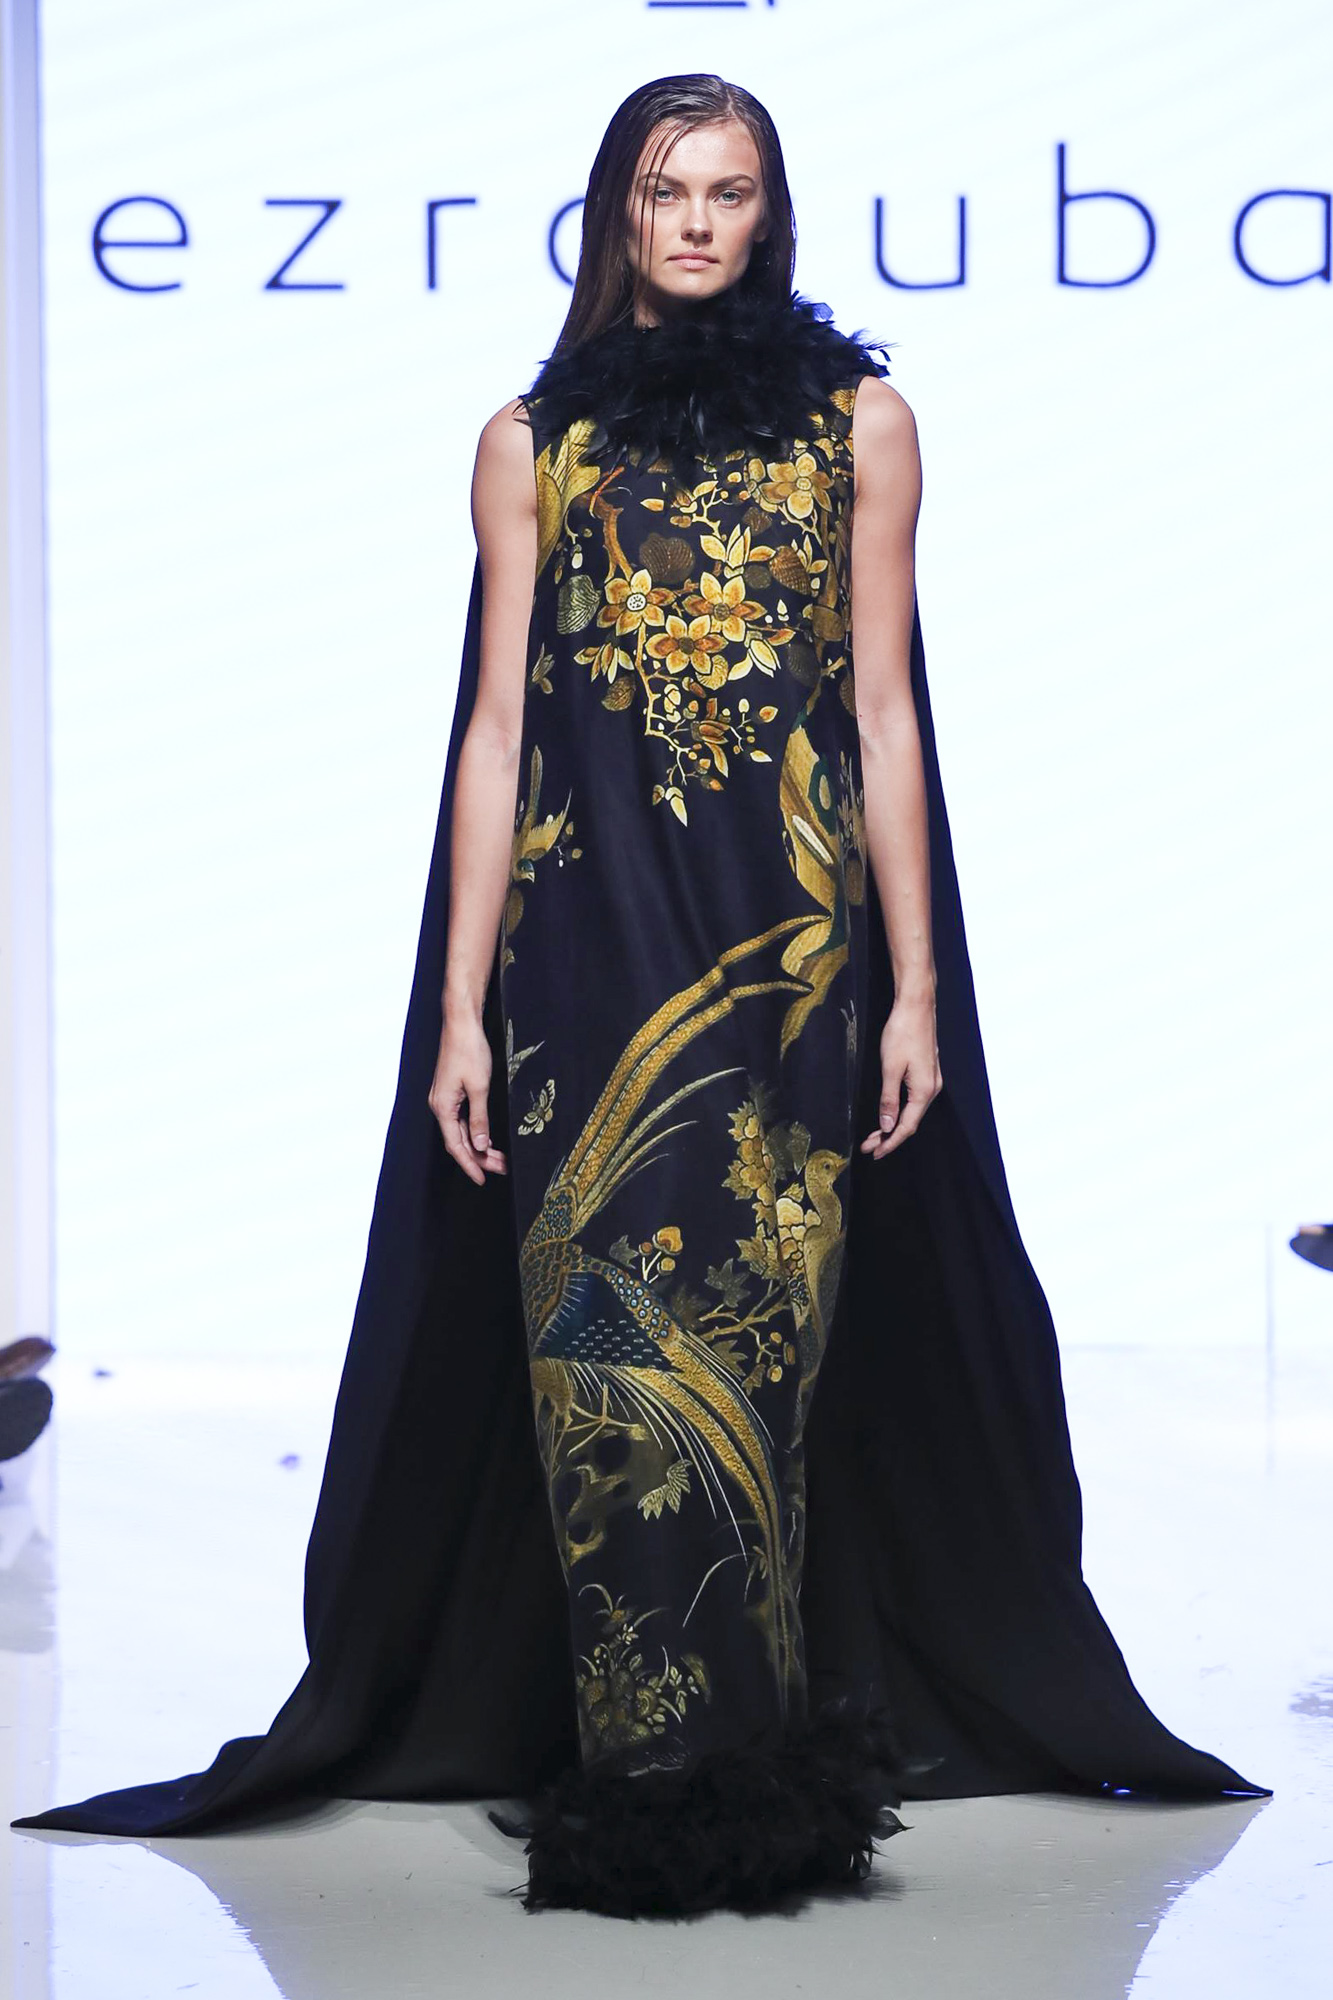 Ezra Tuba fashion show, Arab Fashion Week collection Spring Summer 2020 in Dubai